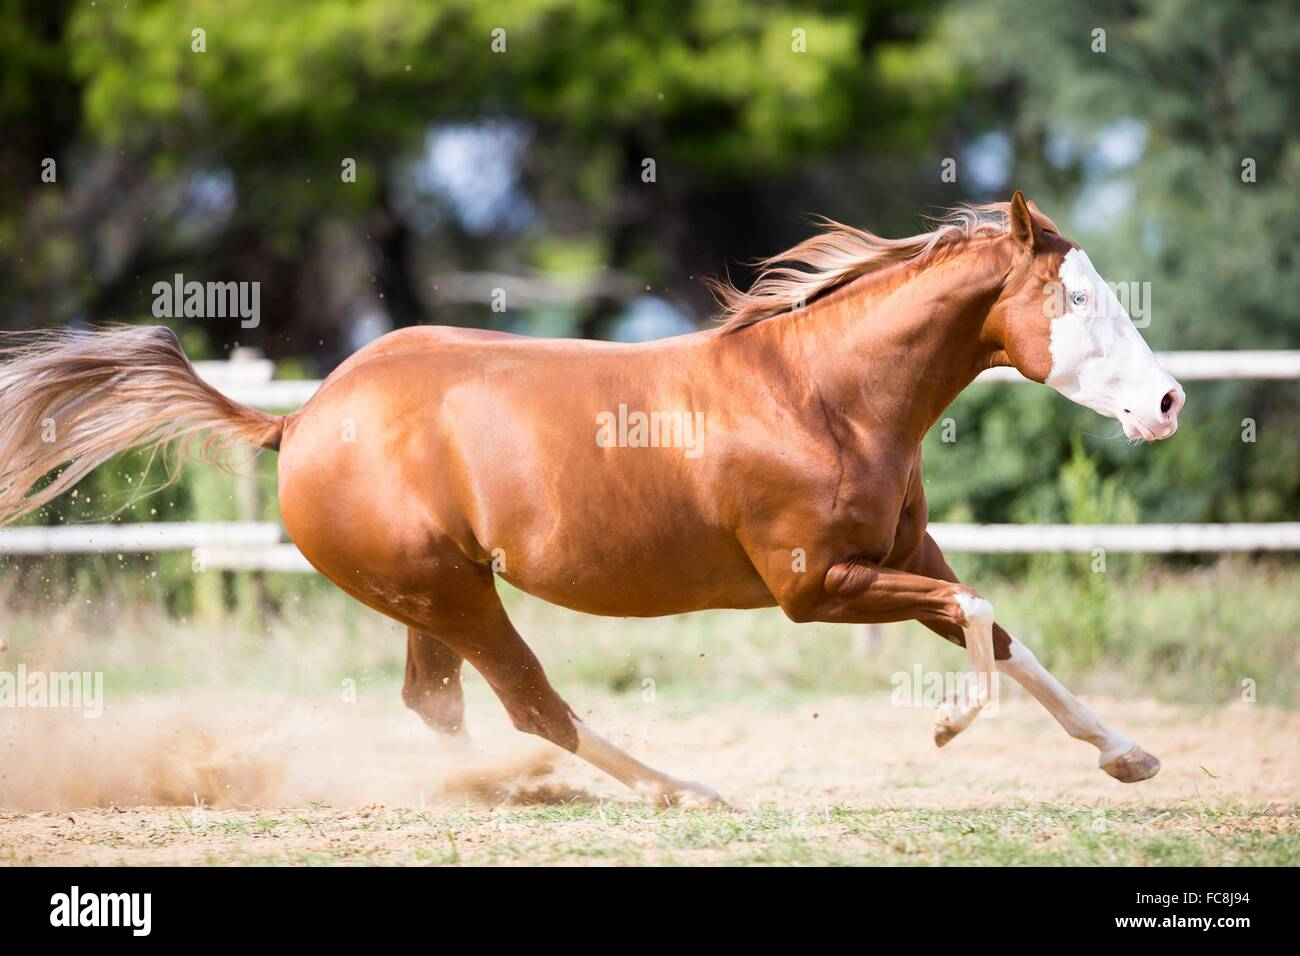 American Paint Horse Chestnut Gelding Galloping In A Paddock Italy